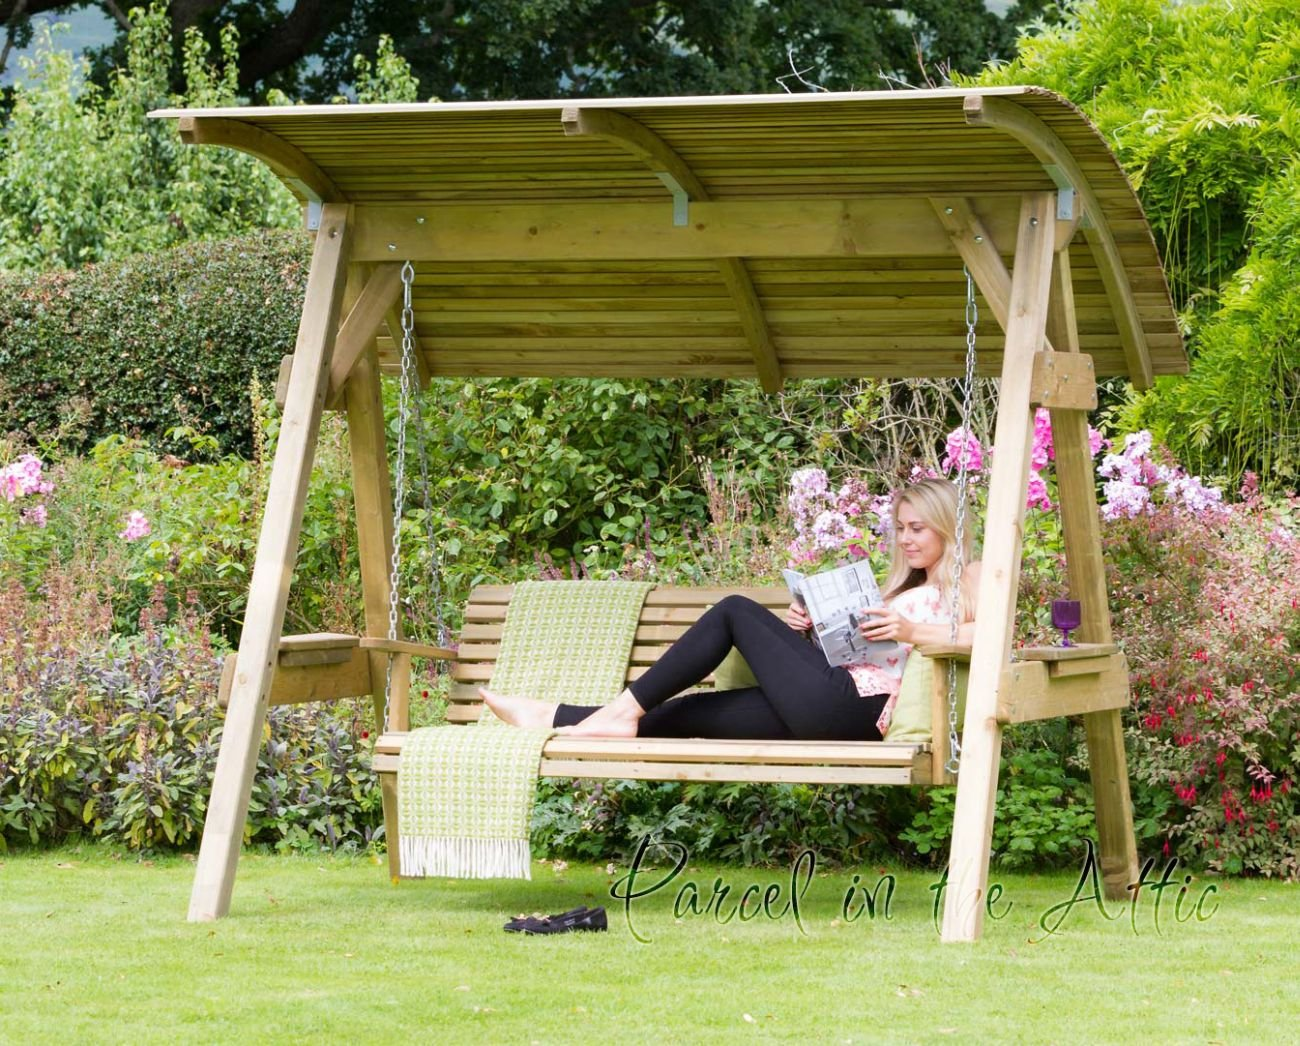 Wooden Garden Swing 2 3 Seat Chair Hammock Bench Furniture Lounger Seater With Canopy Amazoncouk Outdoors